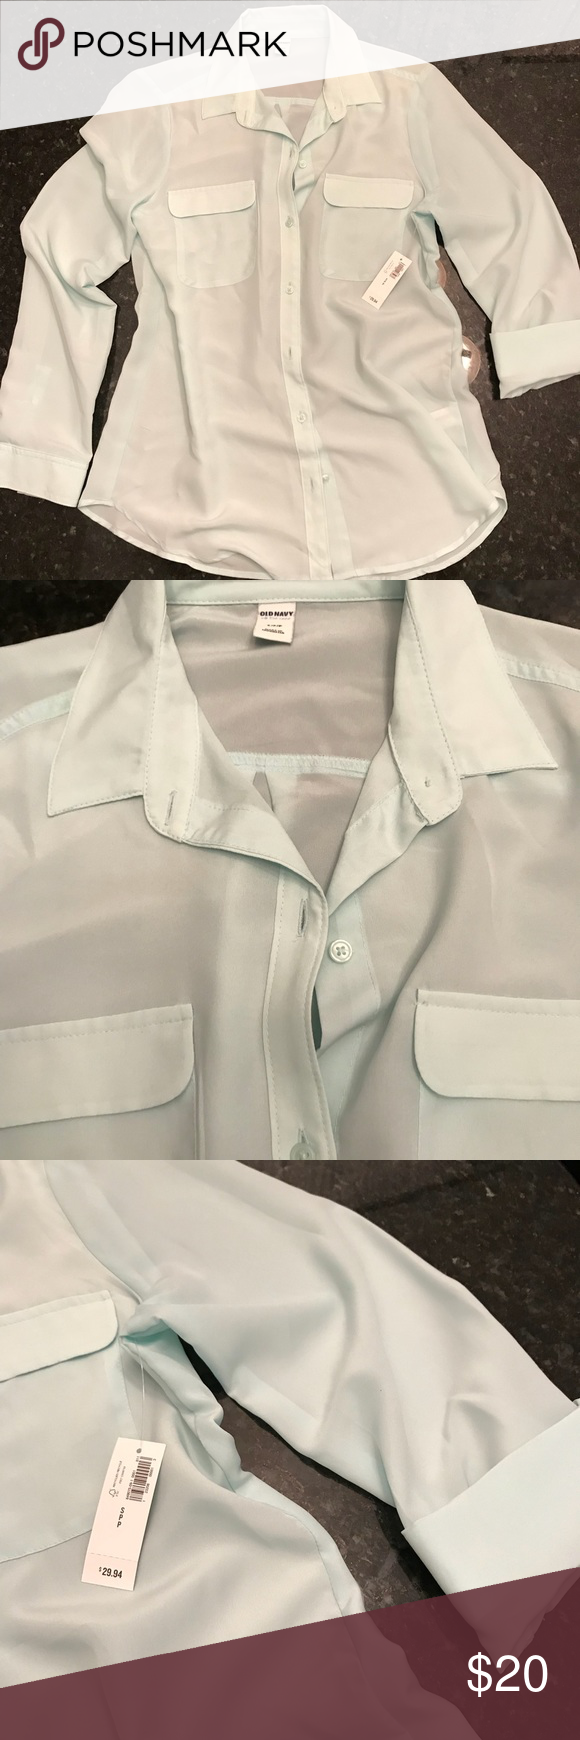 230b6157e89bf Sheer Mint Green Button Up I have a couple of these types of shirts because  I LOVE wearing them with a black lace bra Leyte and black jeans!